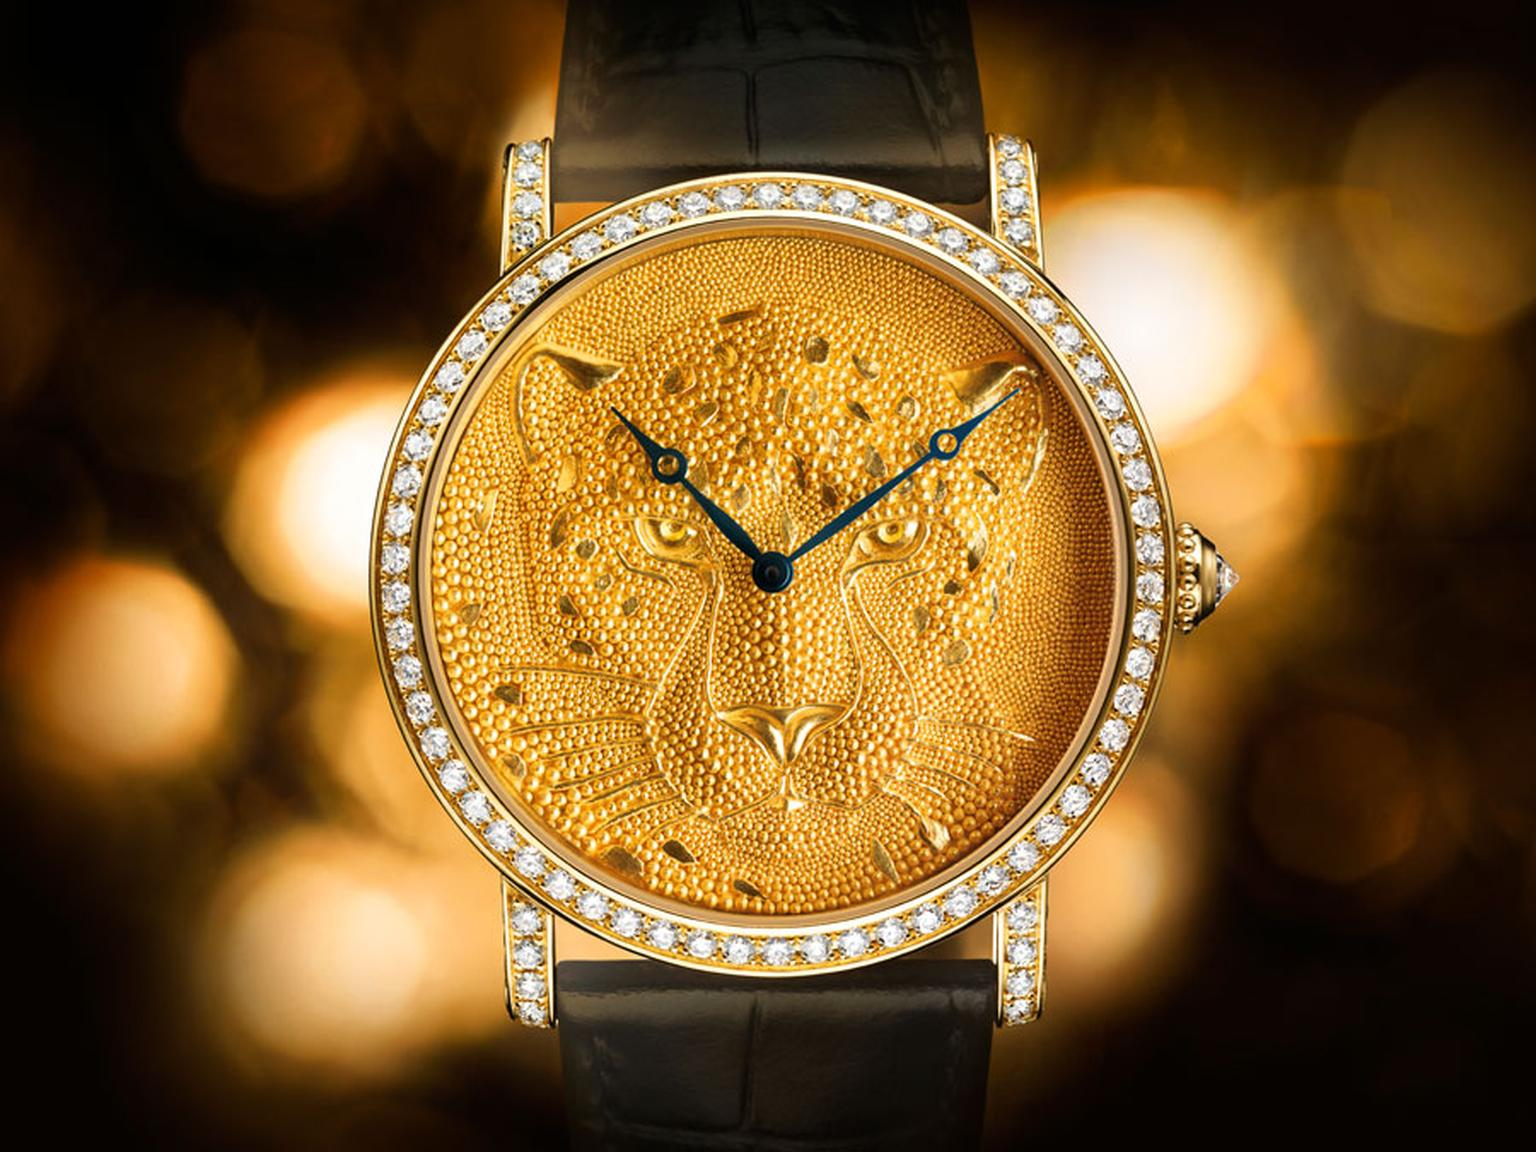 Cartier's 2013 Etruscan Panther Rotonde de Cartier 42mm watch with gold granulation